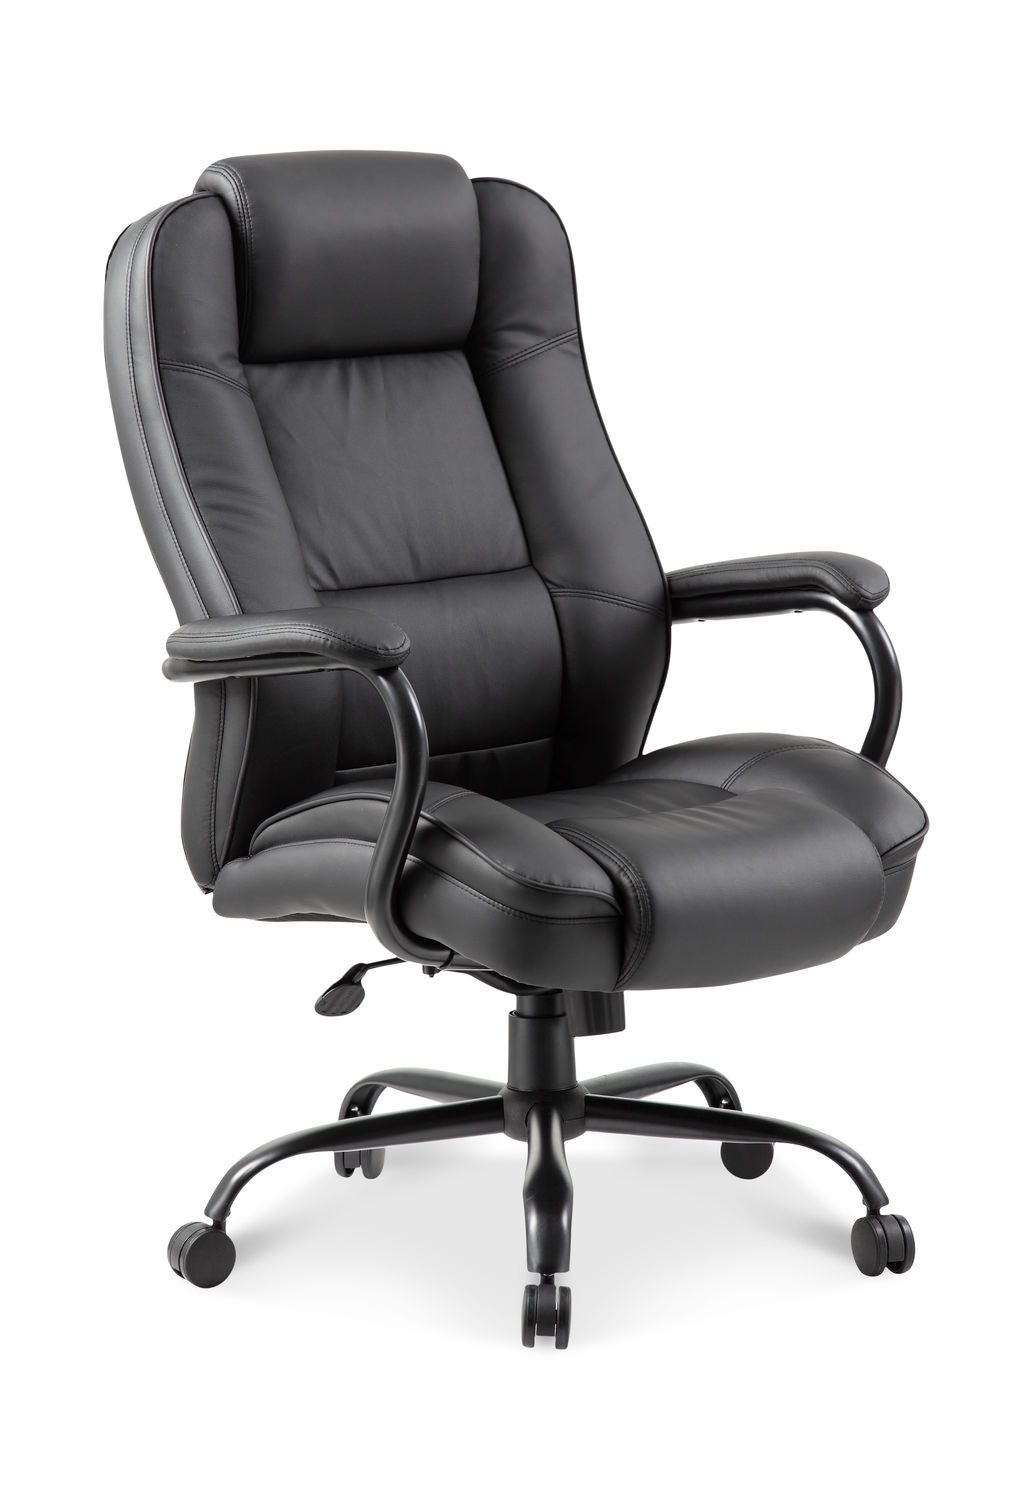 Chairs For Tall Man Big And Tall Office Chair Home Office Inspo Executive Chair